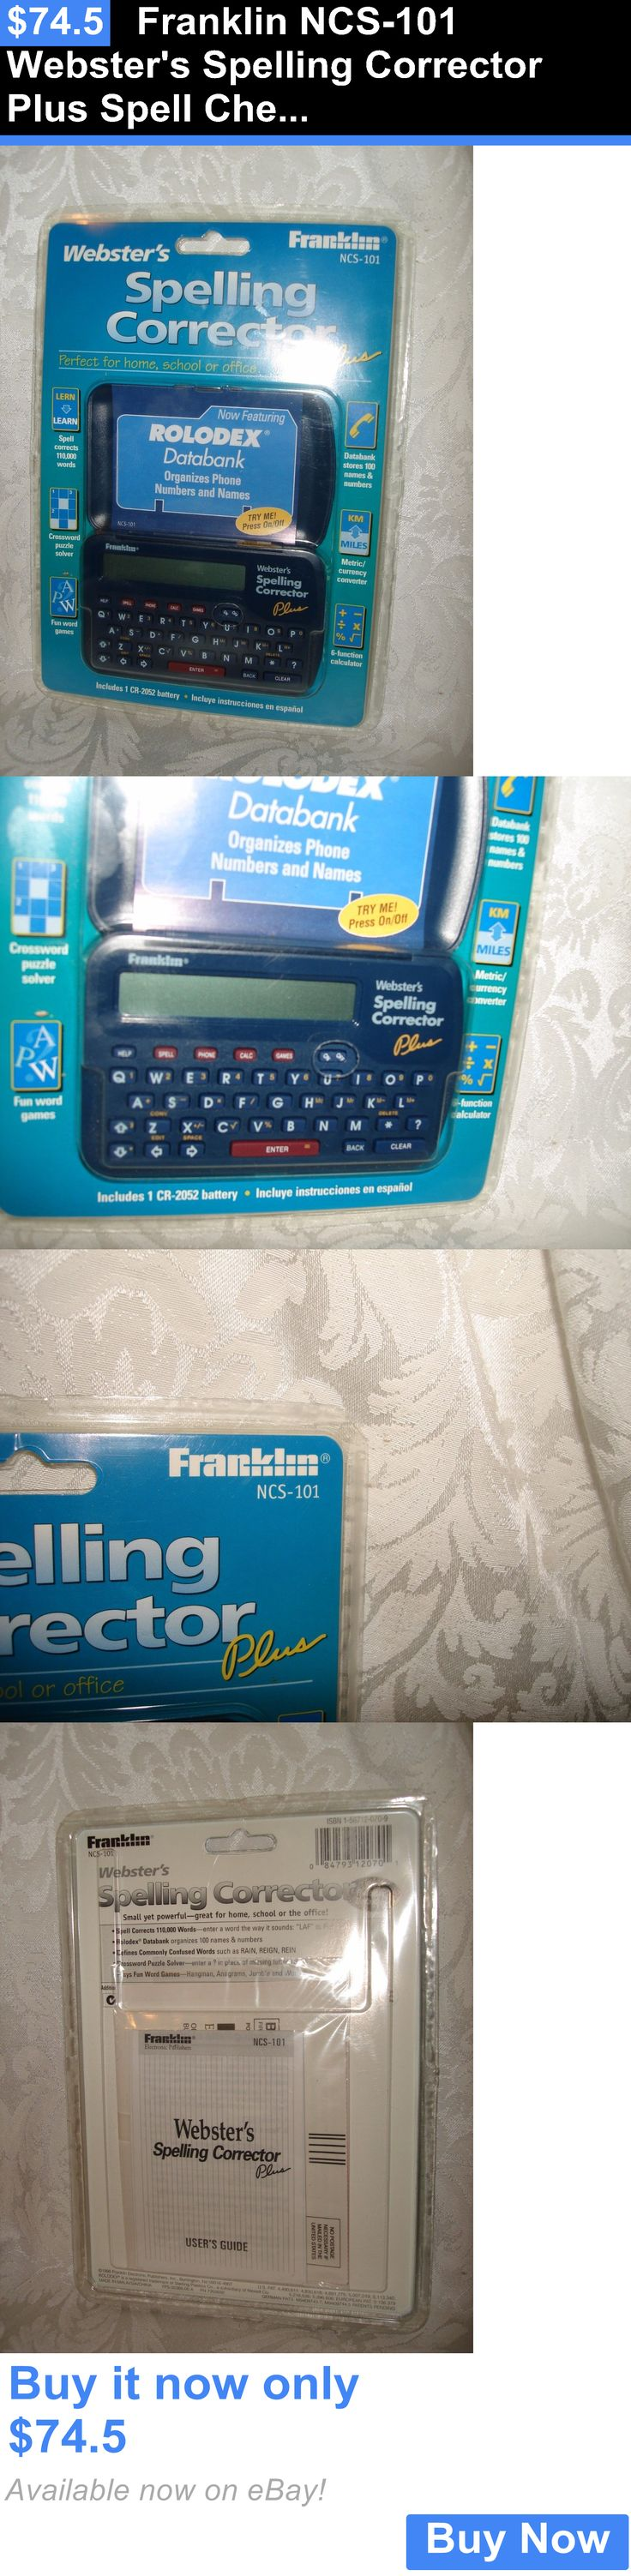 17 best ideas about spelling corrector talking dictionaries and translators franklin ncs 101 websters spelling corrector plus spell check rolodex databank